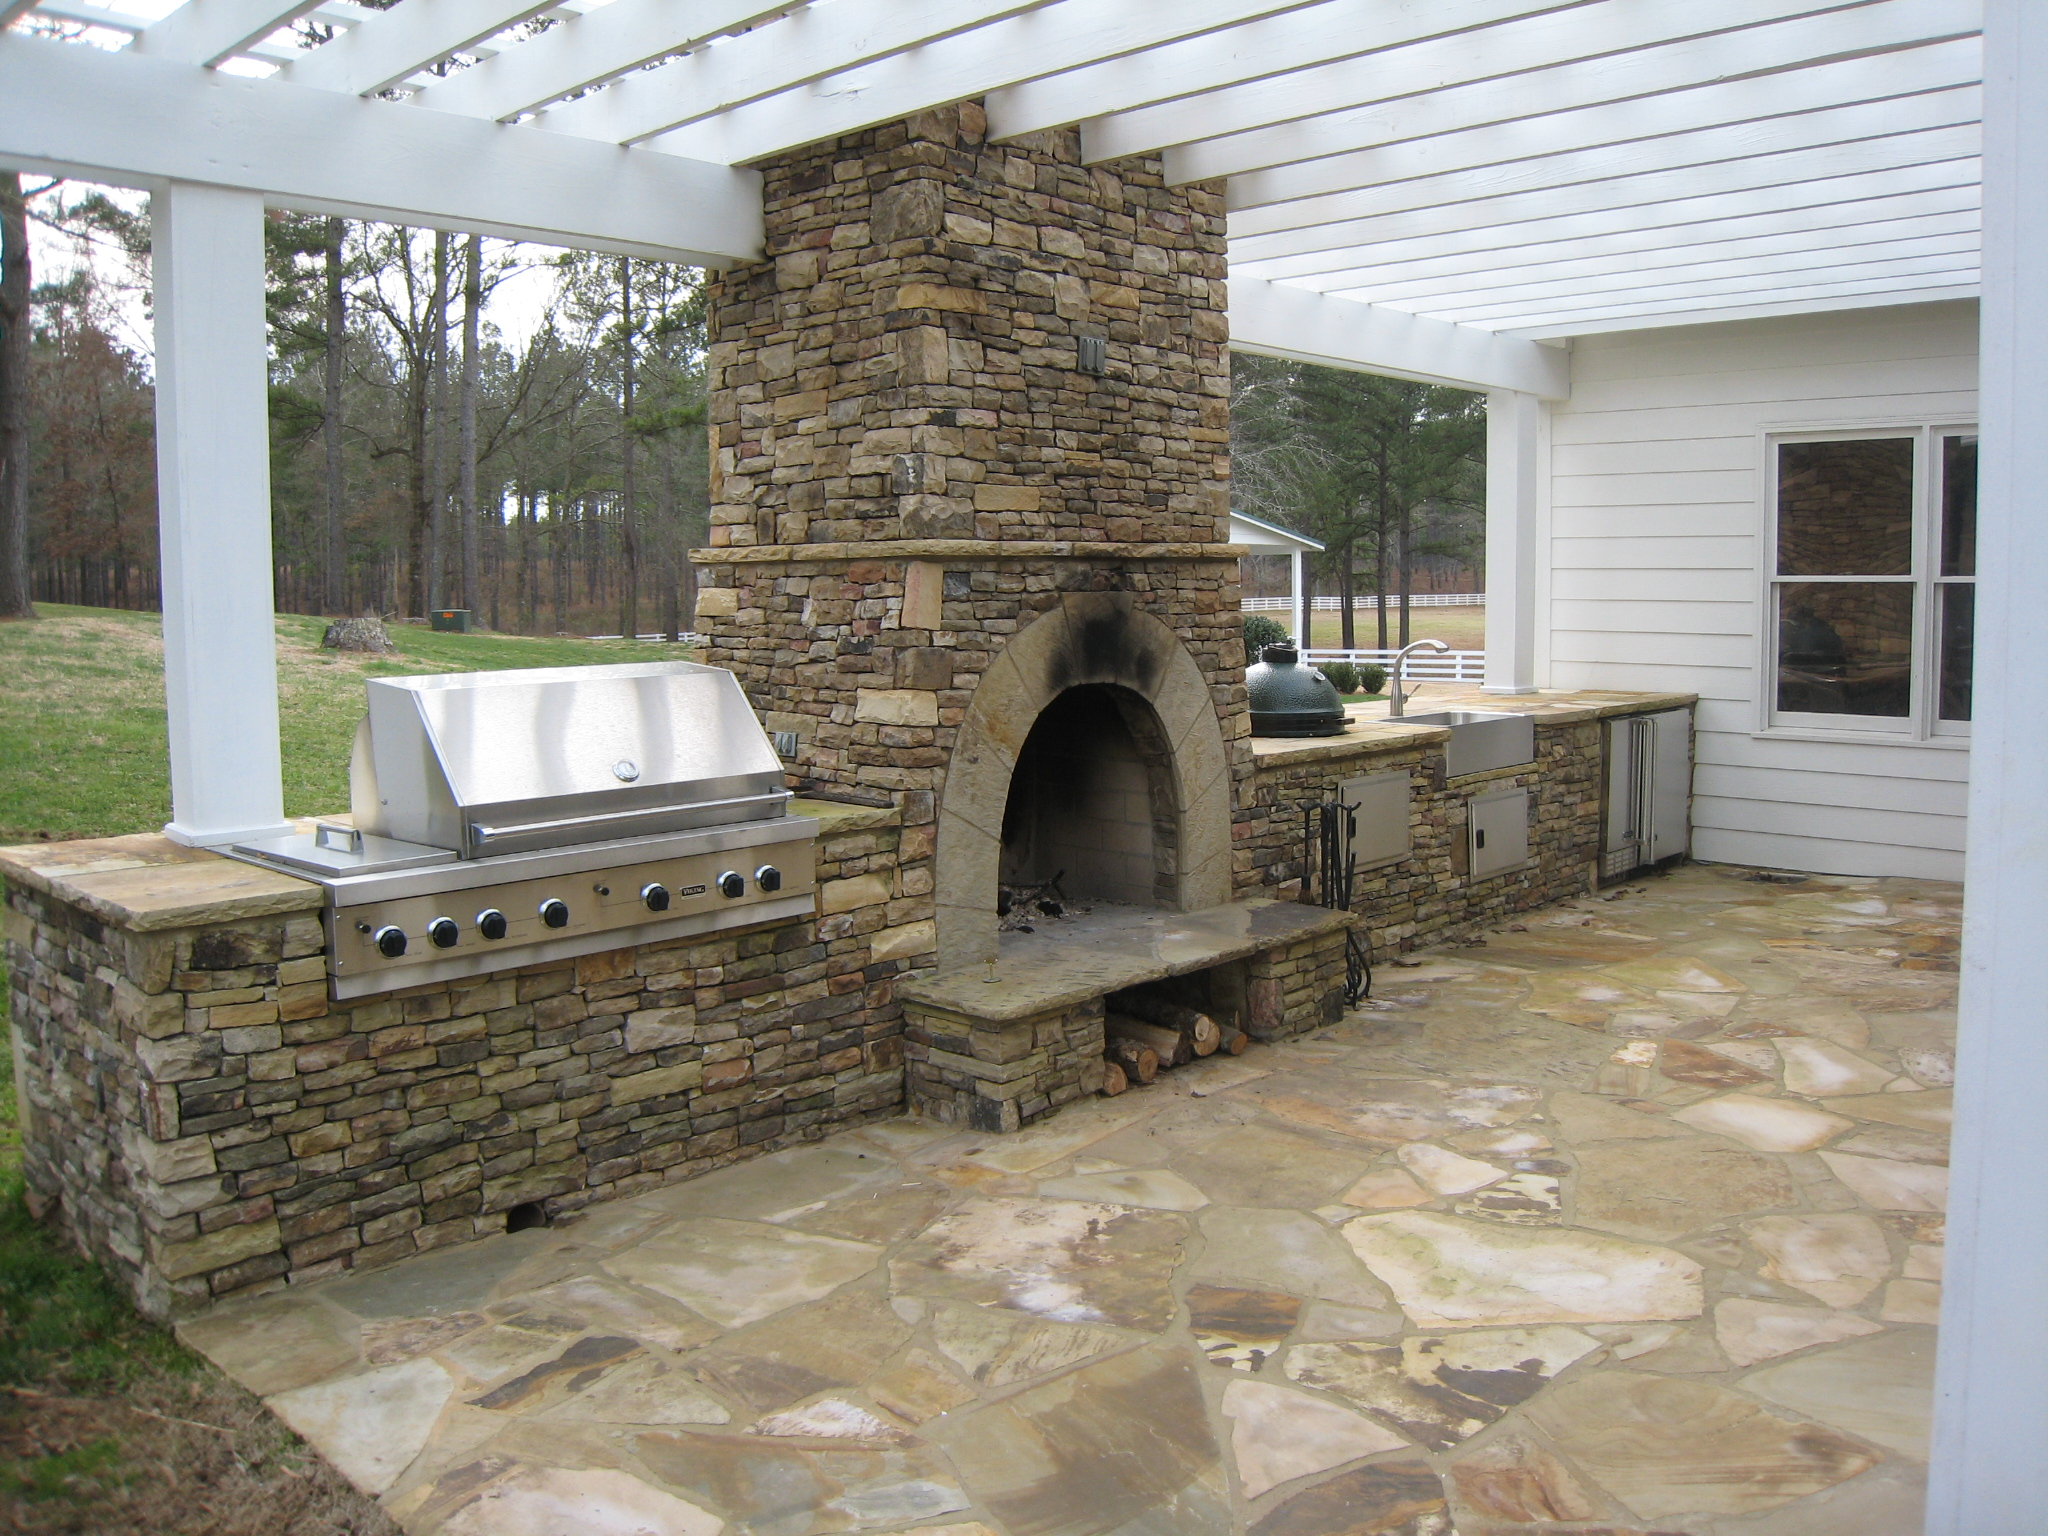 Outdoor Kitchens & Stone BBQ Design | Davel Construction on Outdoor Kitchen And Fireplace Ideas id=43620